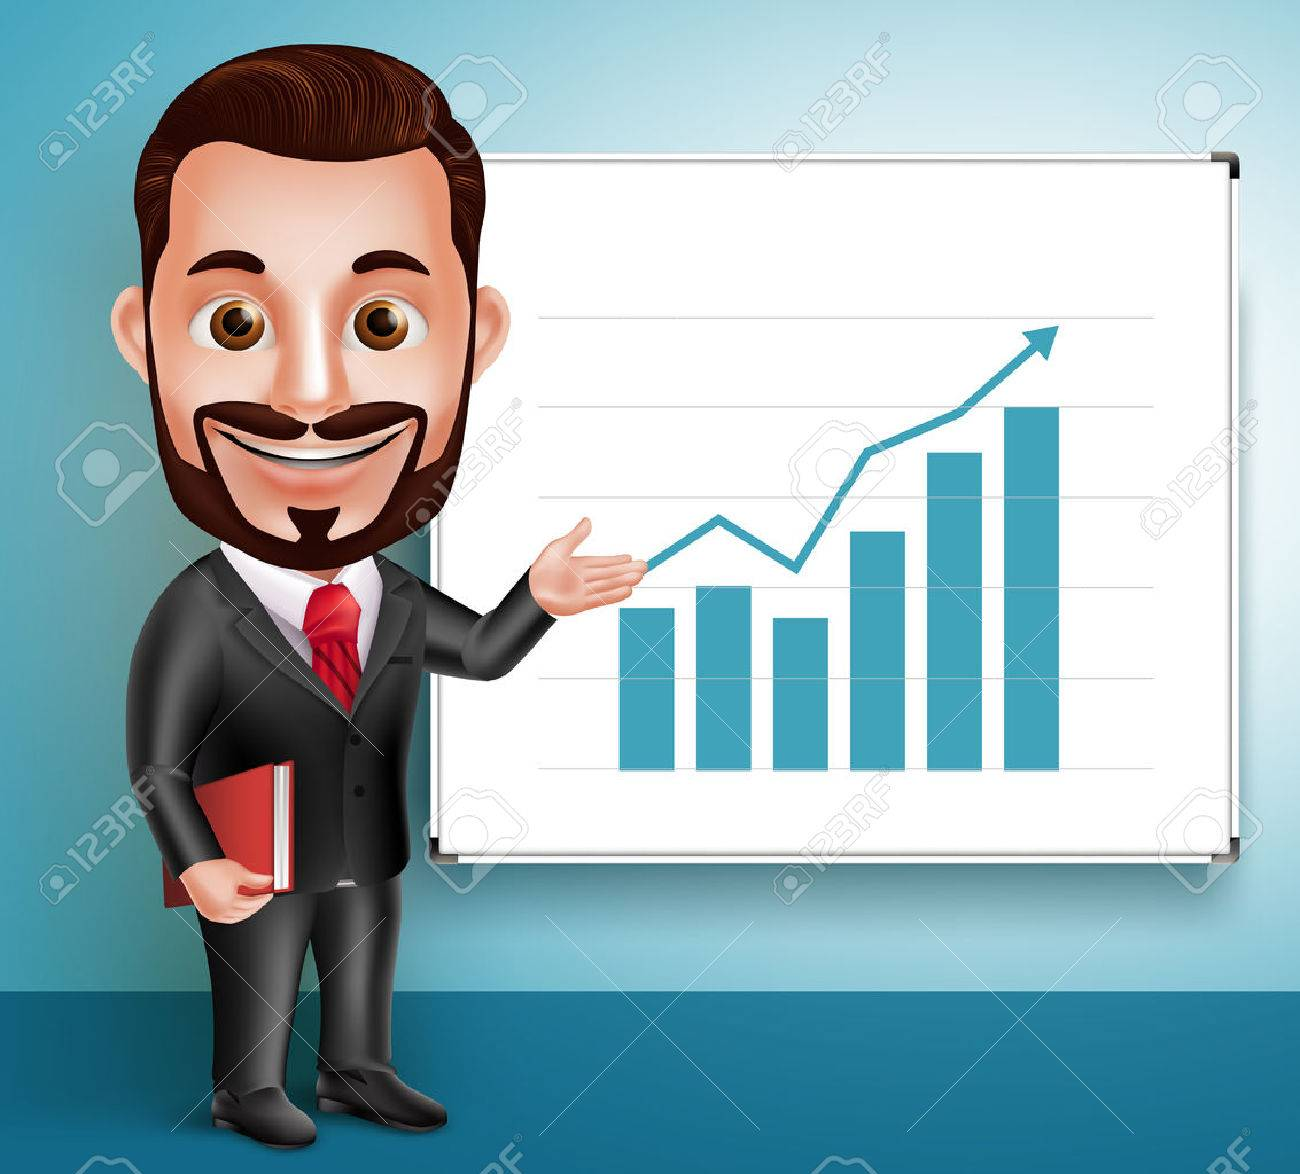 3D Realistic Professional Business Man Vector Character Happy Speaking and Showing Chart Presentation in White Board. Vector Illustration - 49826491